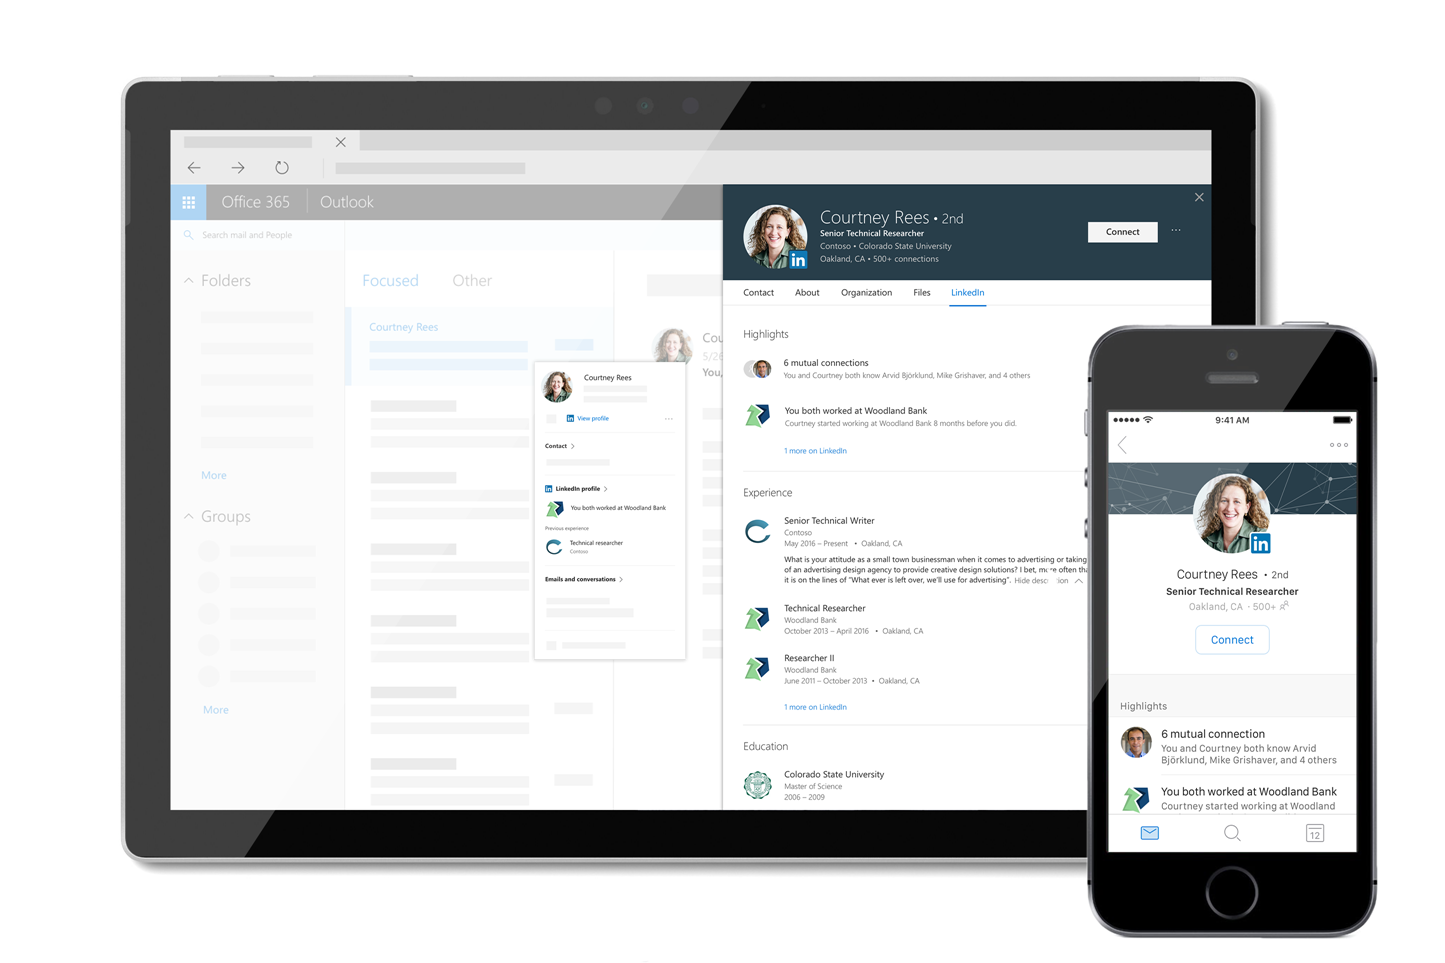 LinkedIn in Microsoft apps and services - Office Support